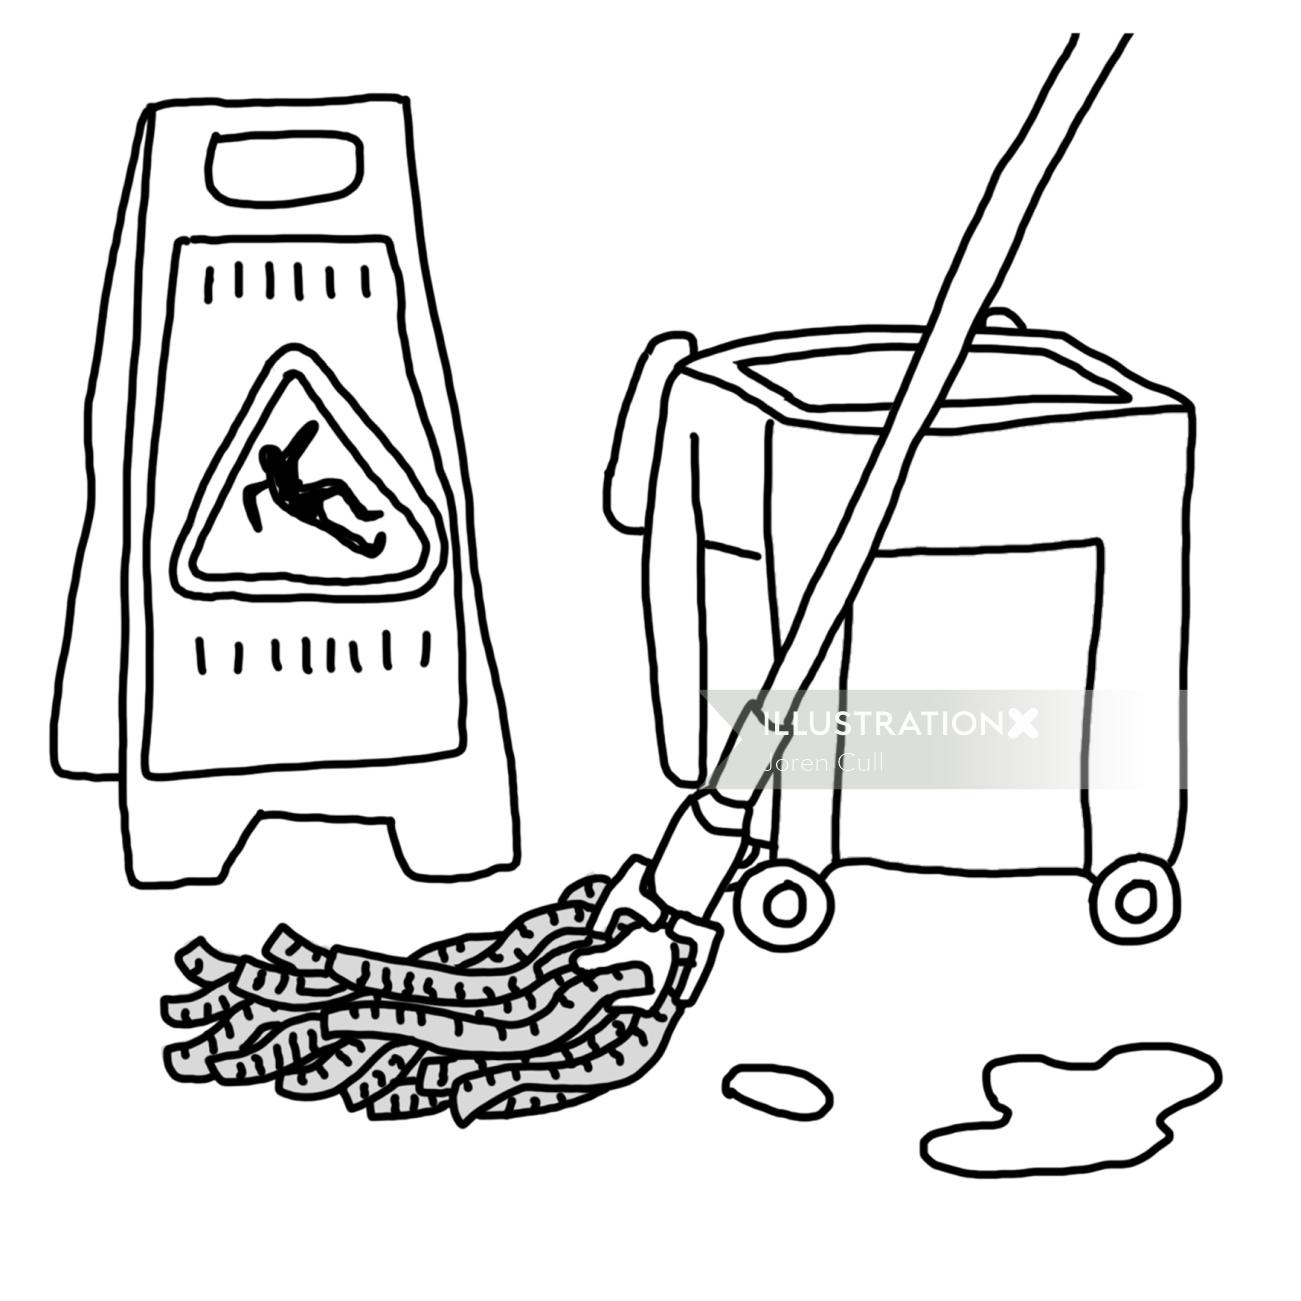 Black and white illustration of cleaning kit